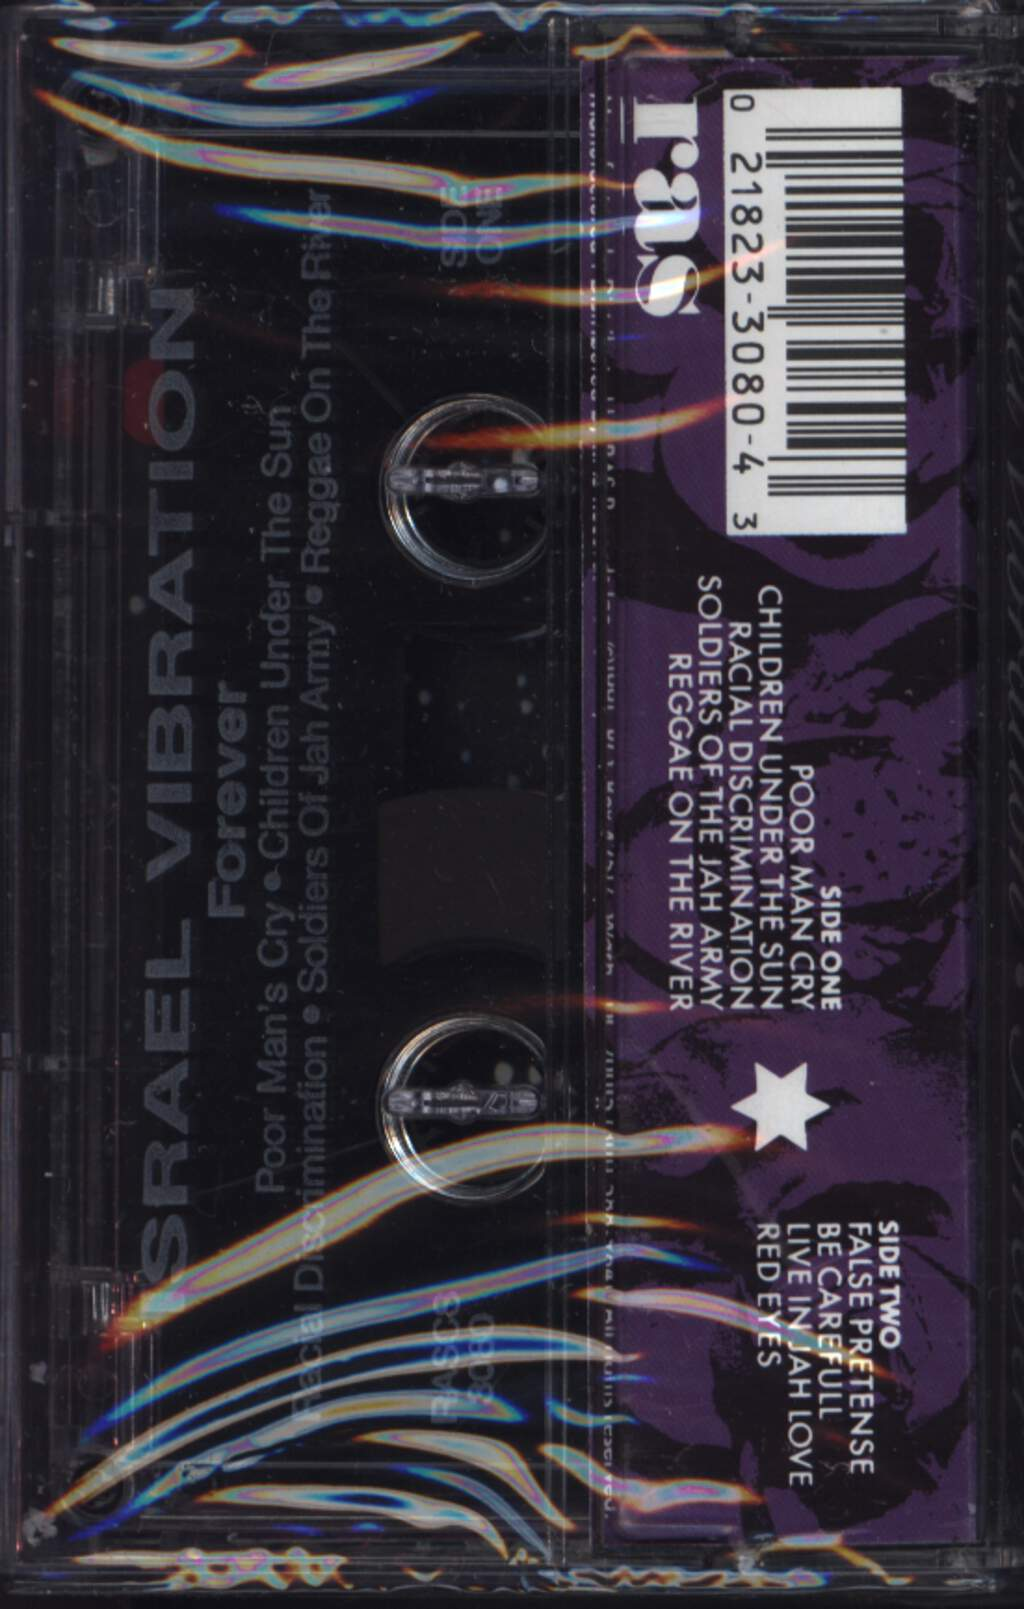 Israel Vibration: Forever, Compact Cassette